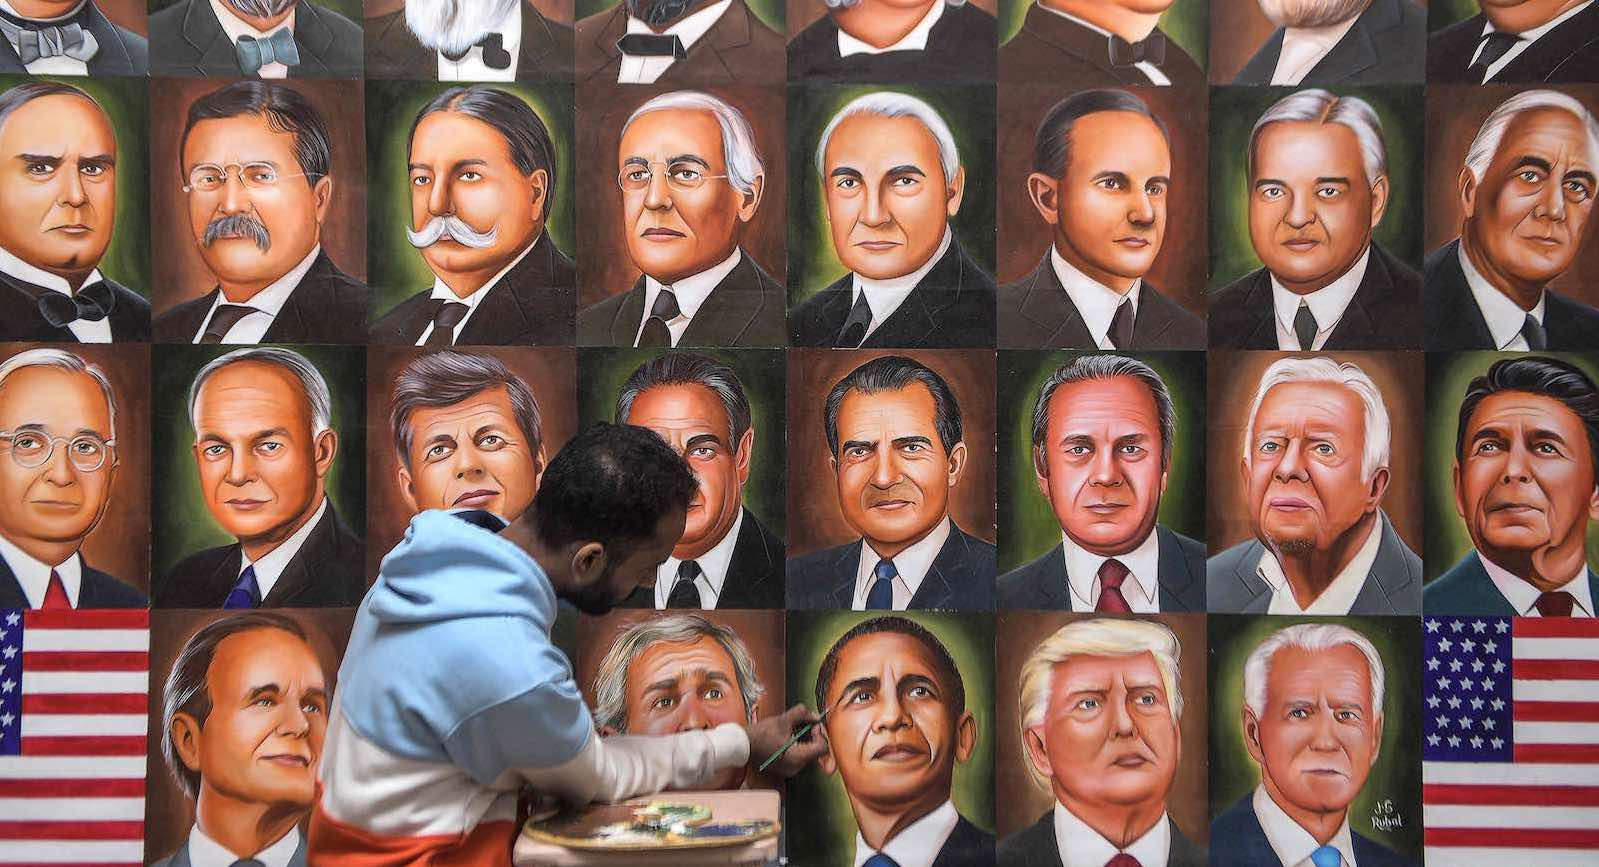 A painter puts the finishing touches on a mural of US presidents in Amritsar, India, 8 November 2020 (Narinder Nanu/AFP via Getty Images)